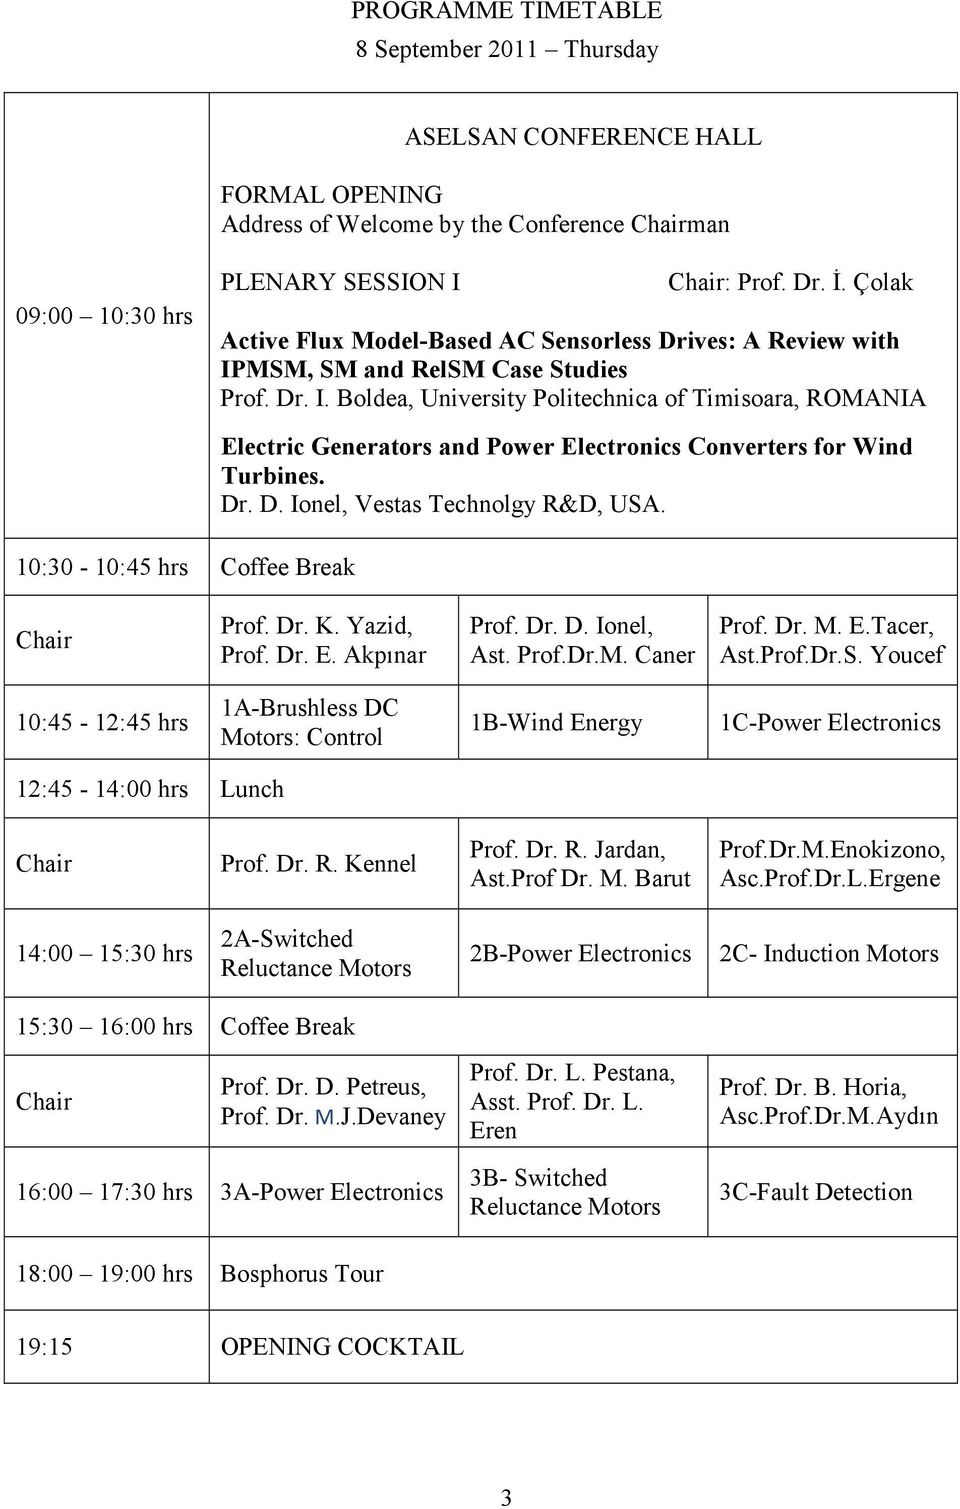 MSM, SM and RelSM Case Studies Prof. Dr. I. Boldea, University Politechnica of Timisoara, ROMANIA 10:30-10:45 hrs Coffee Break Electric Generators and Power Electronics Converters for Wind Turbines.